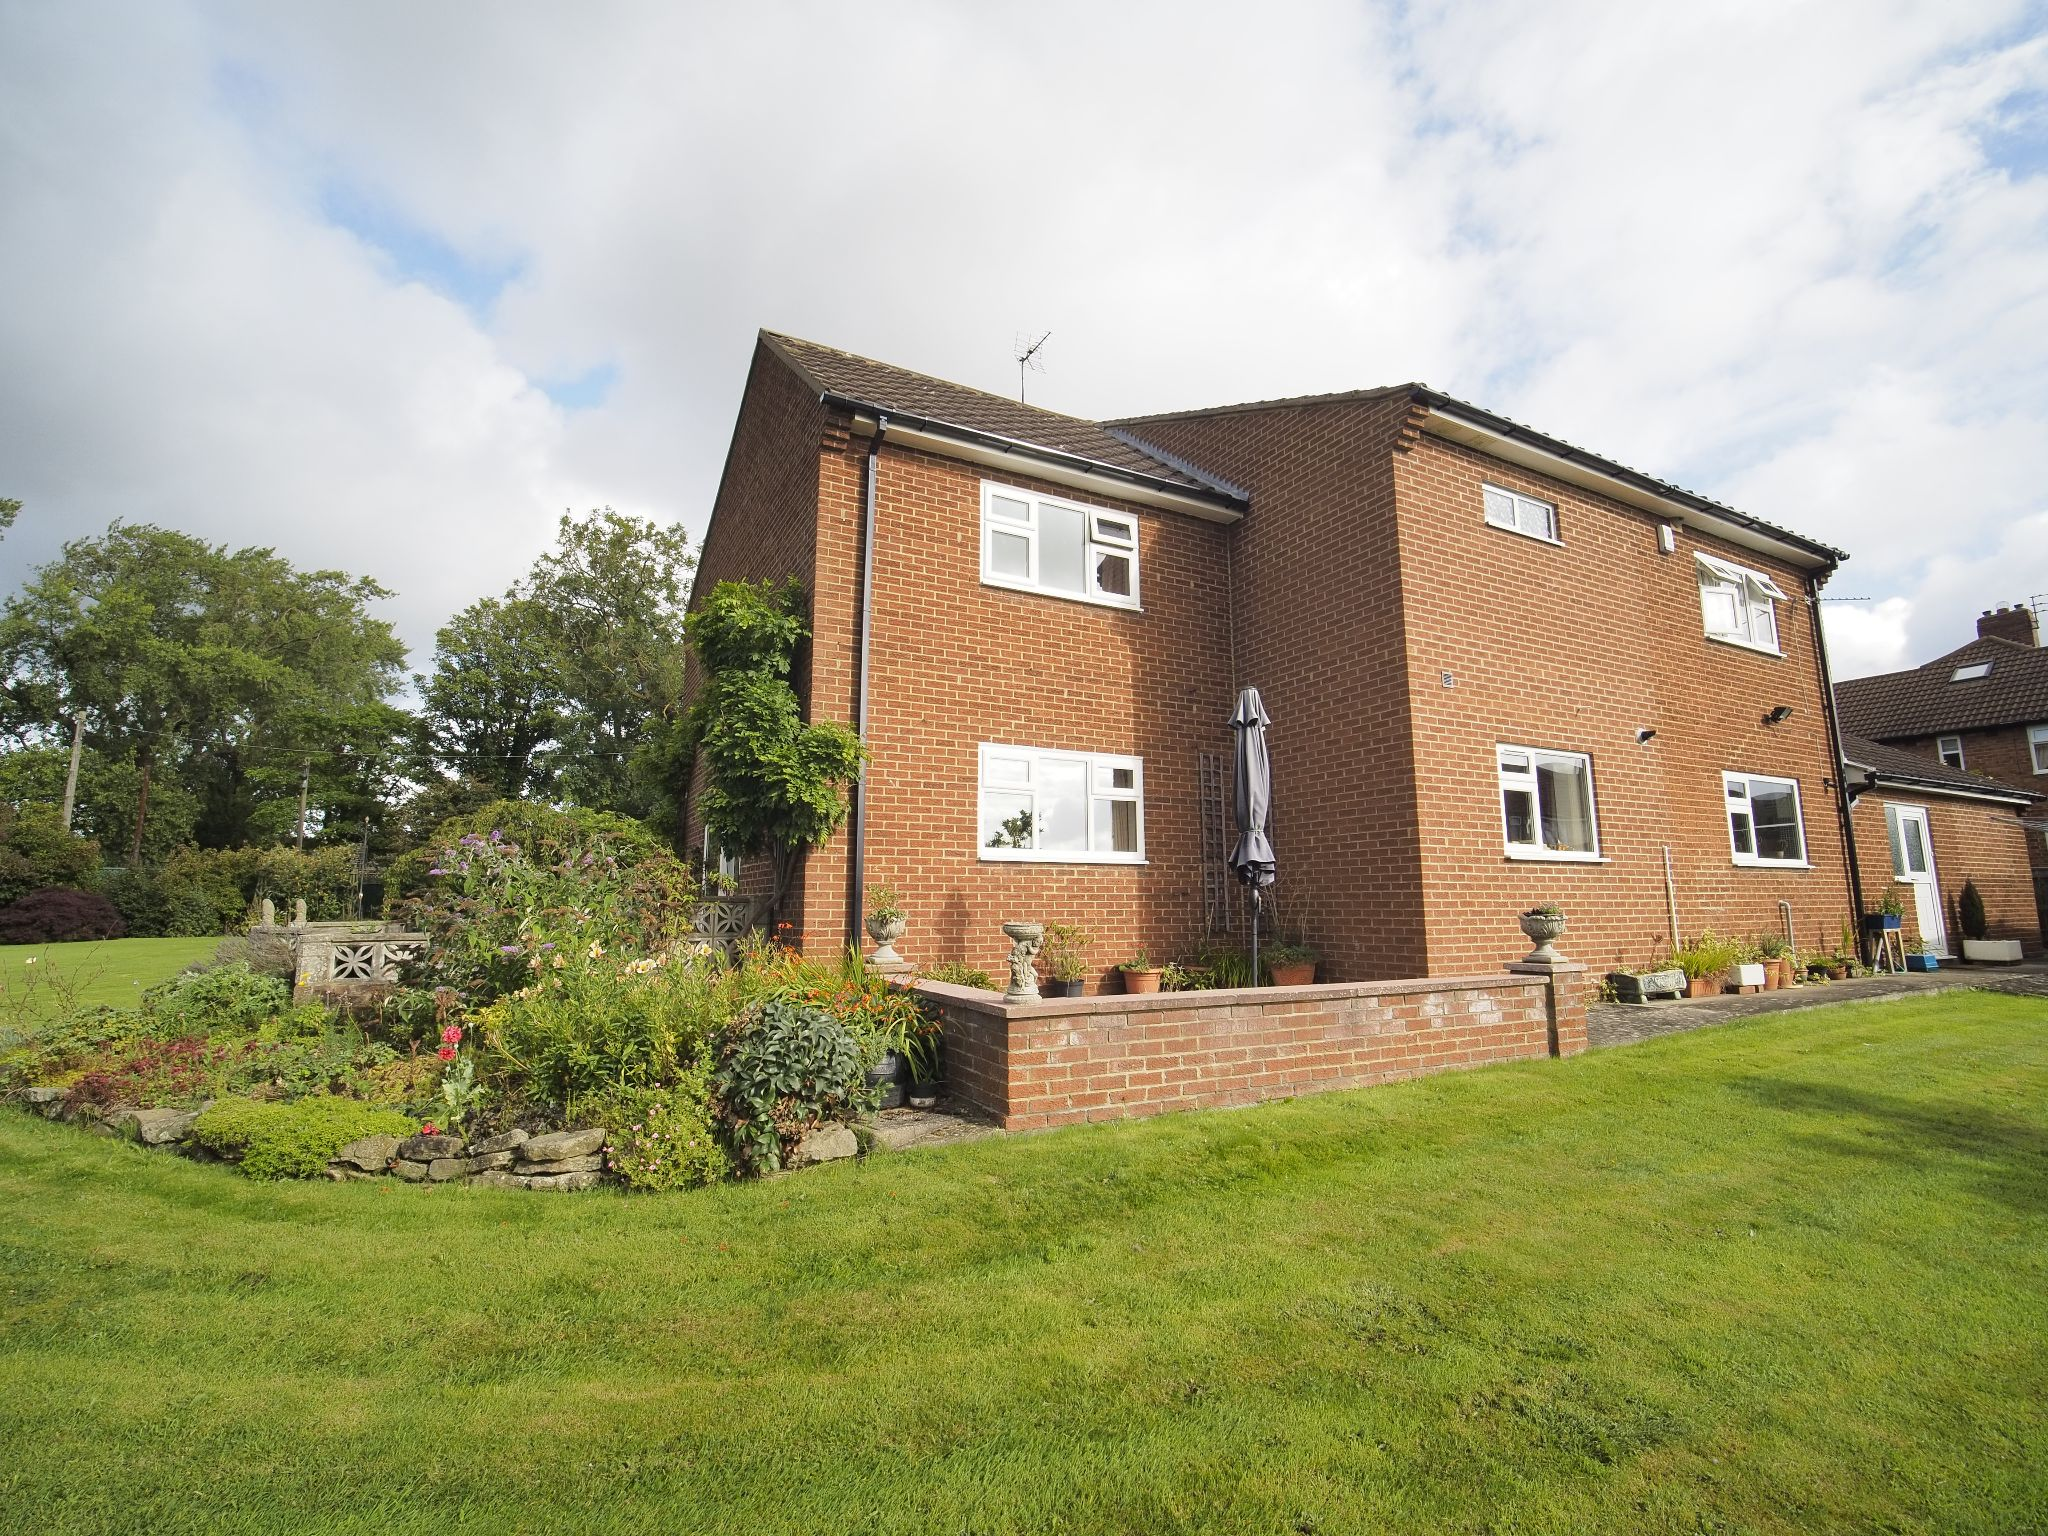 4 bedroom detached house For Sale in Willington - Looking to the house from garden.